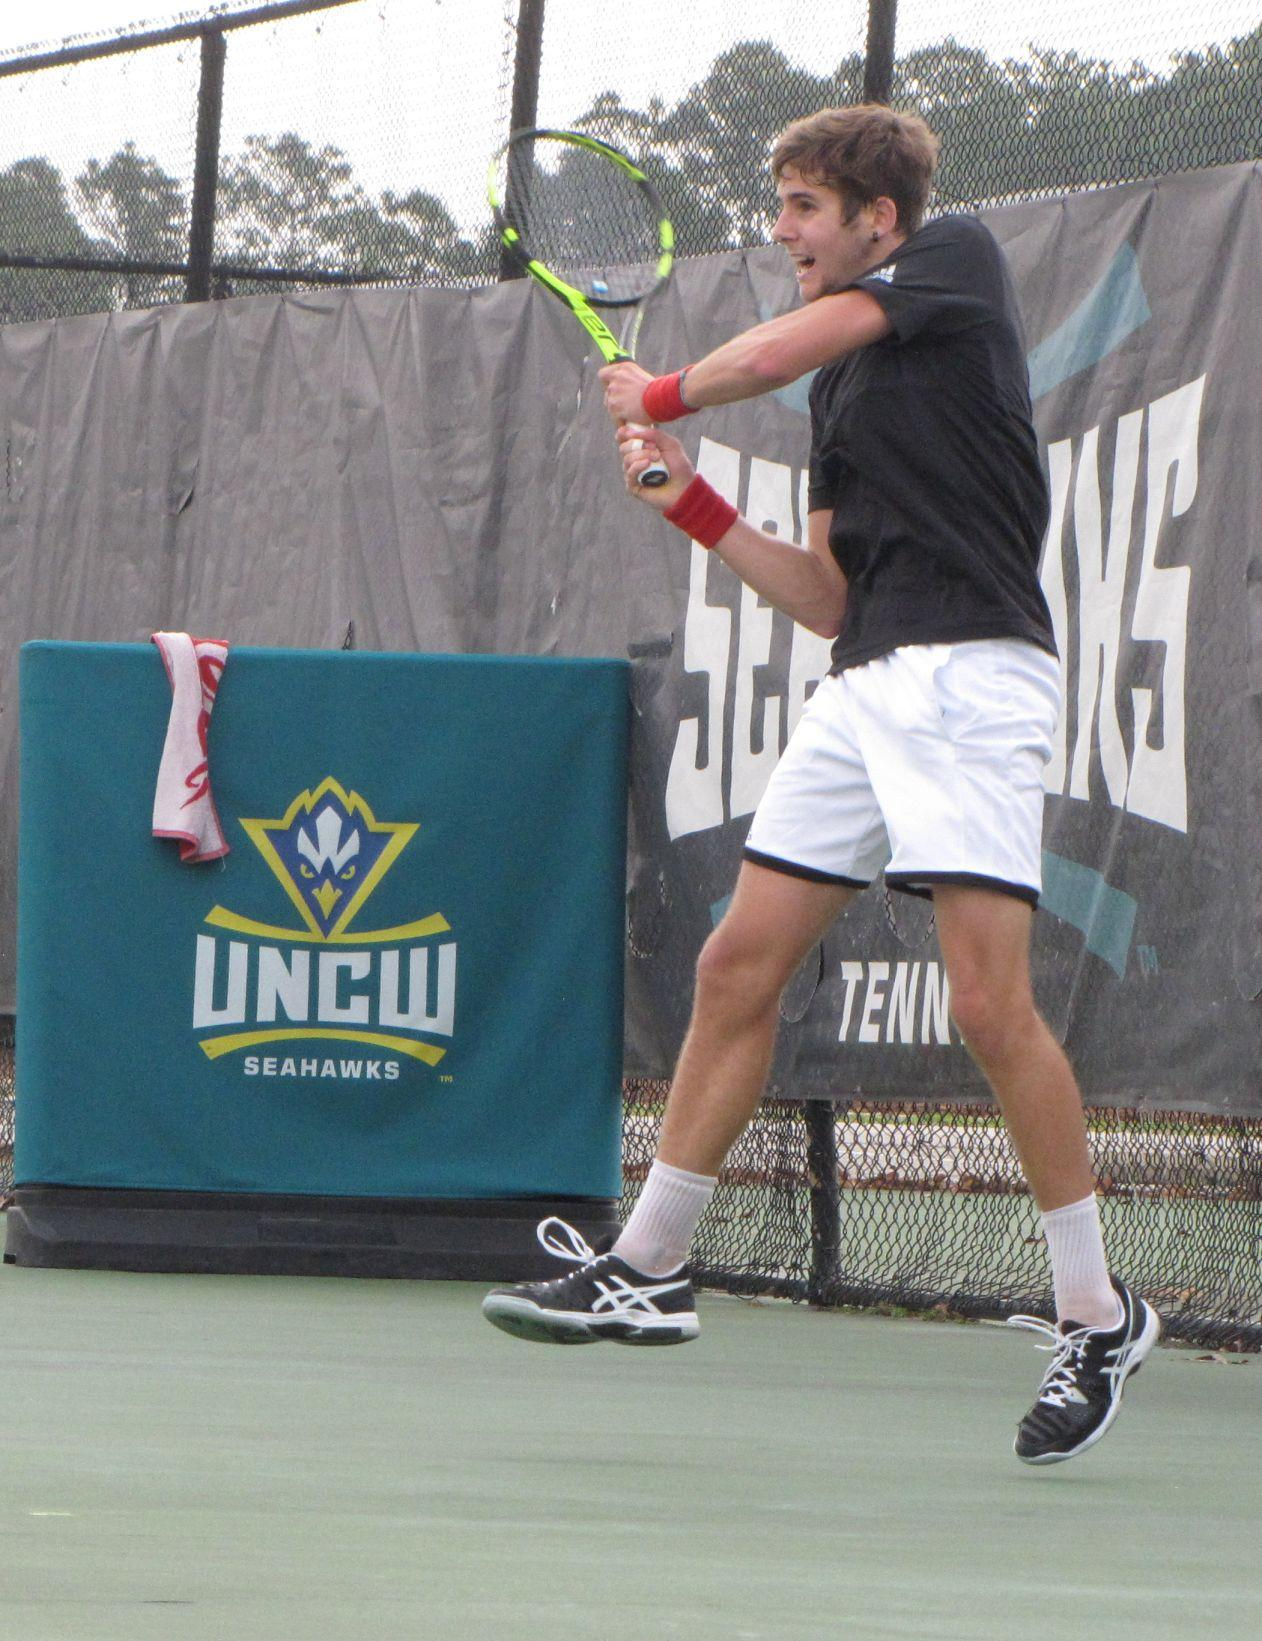 UNCW freshman Ignasi de Rueda has won 8 of 11 singles matches this spring.